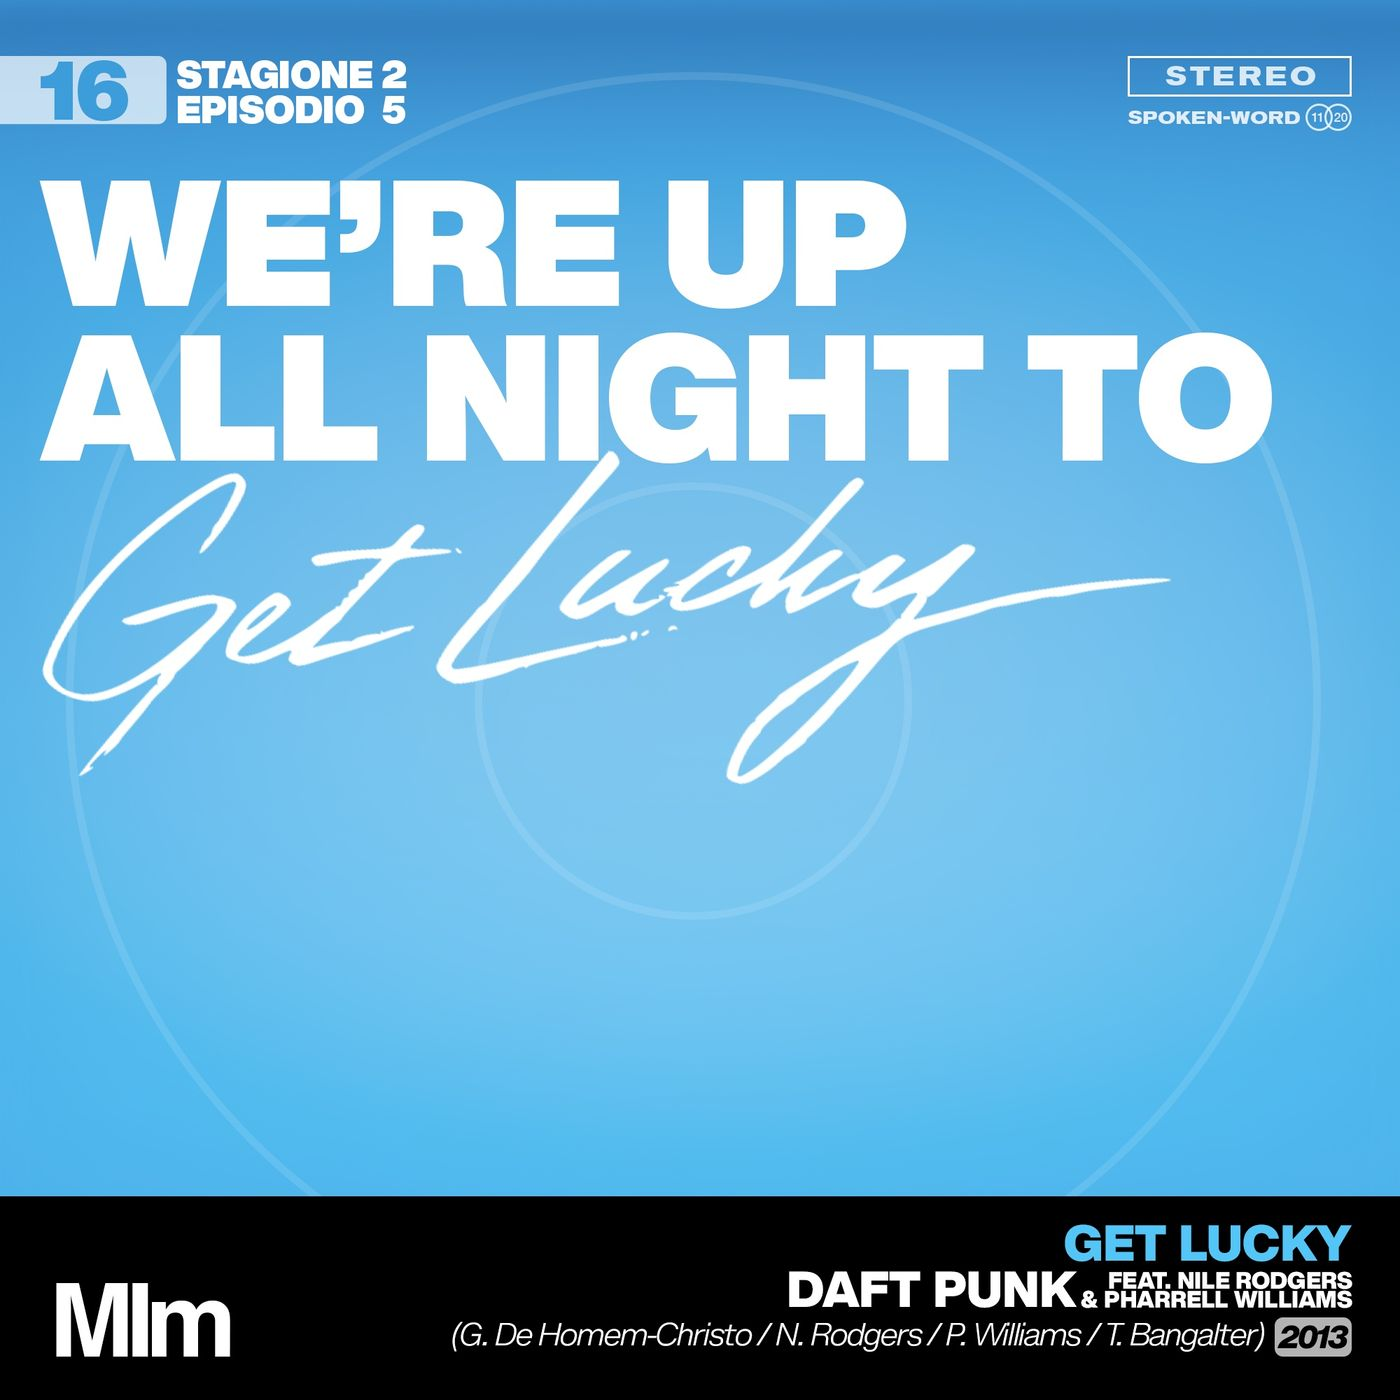 #16: We're up all night to get lucky (GET LUCKY - Daft Punk feat. Pharrell Williams & Nile Rodgers)